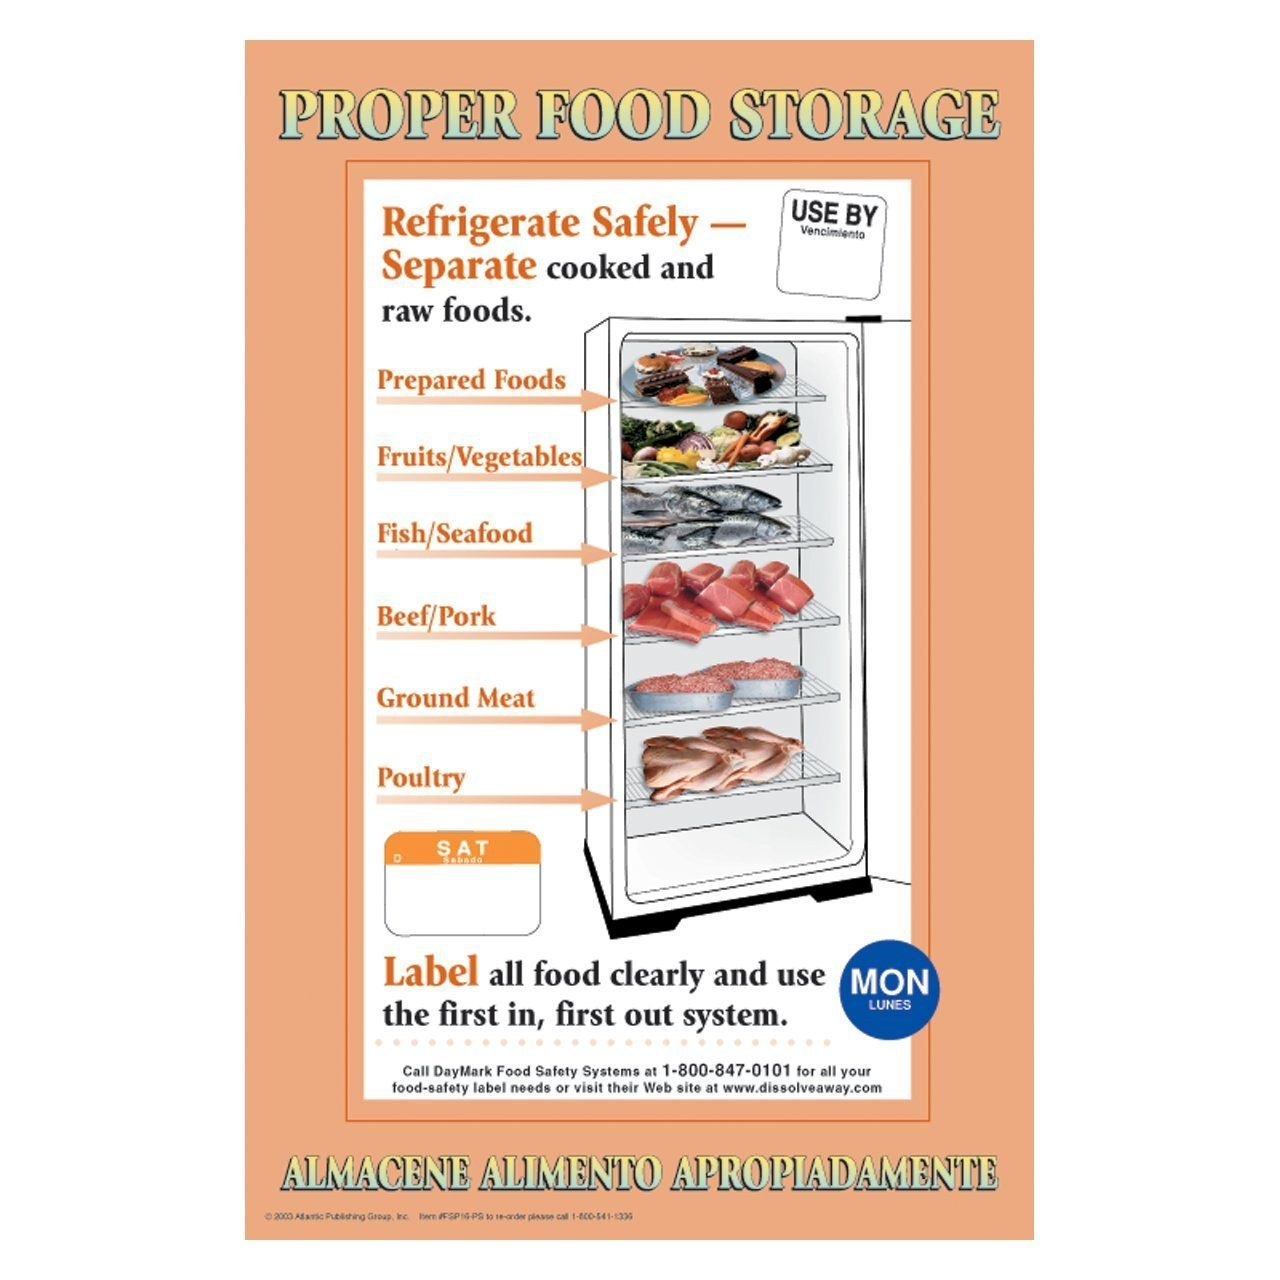 Proper Food Storage Poster Interesting About Remodel Home